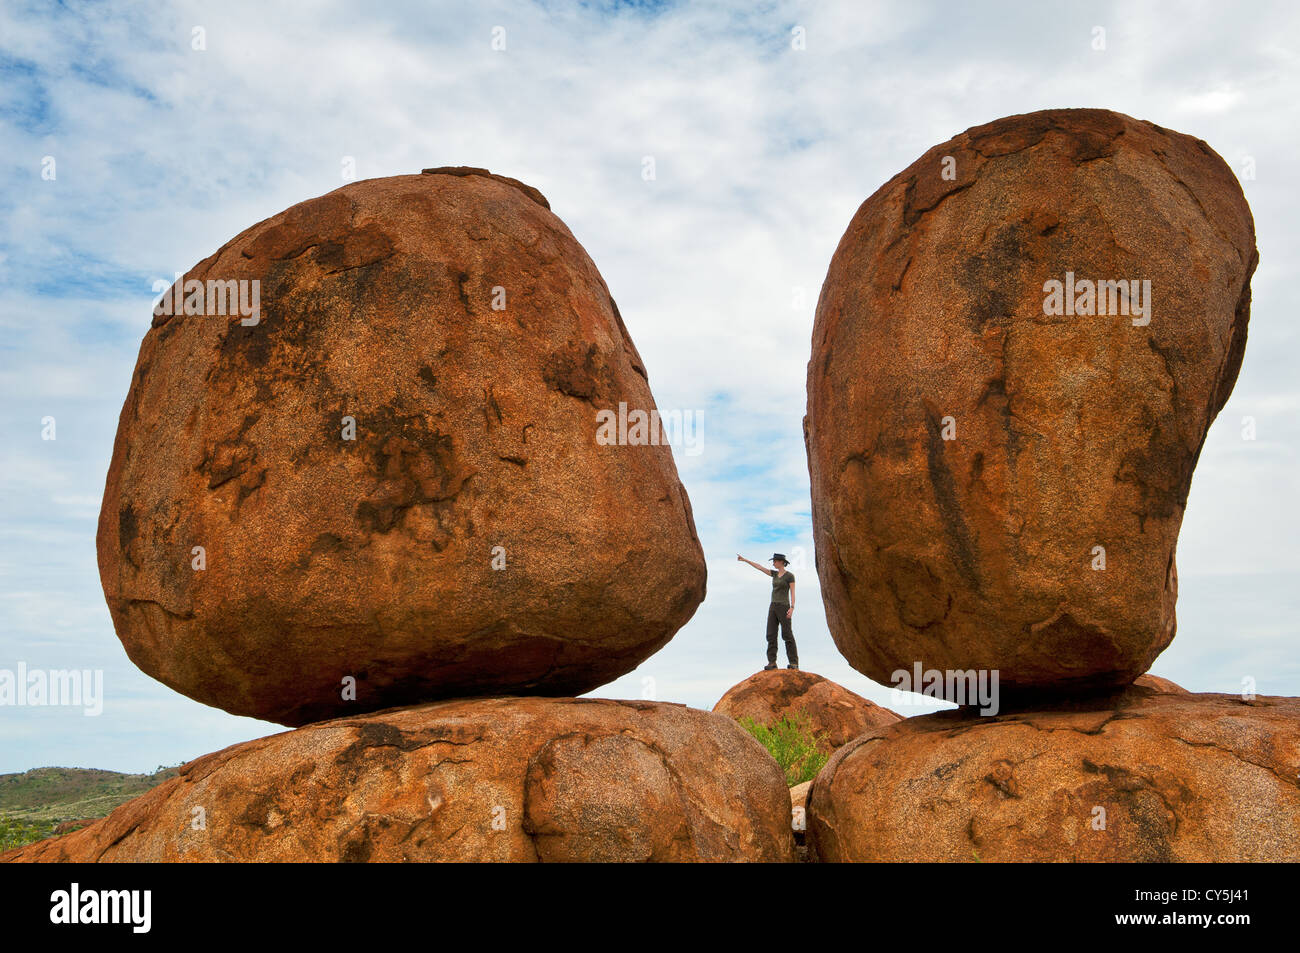 Person in the distance makes the Devils Marbles looking huge. - Stock Image